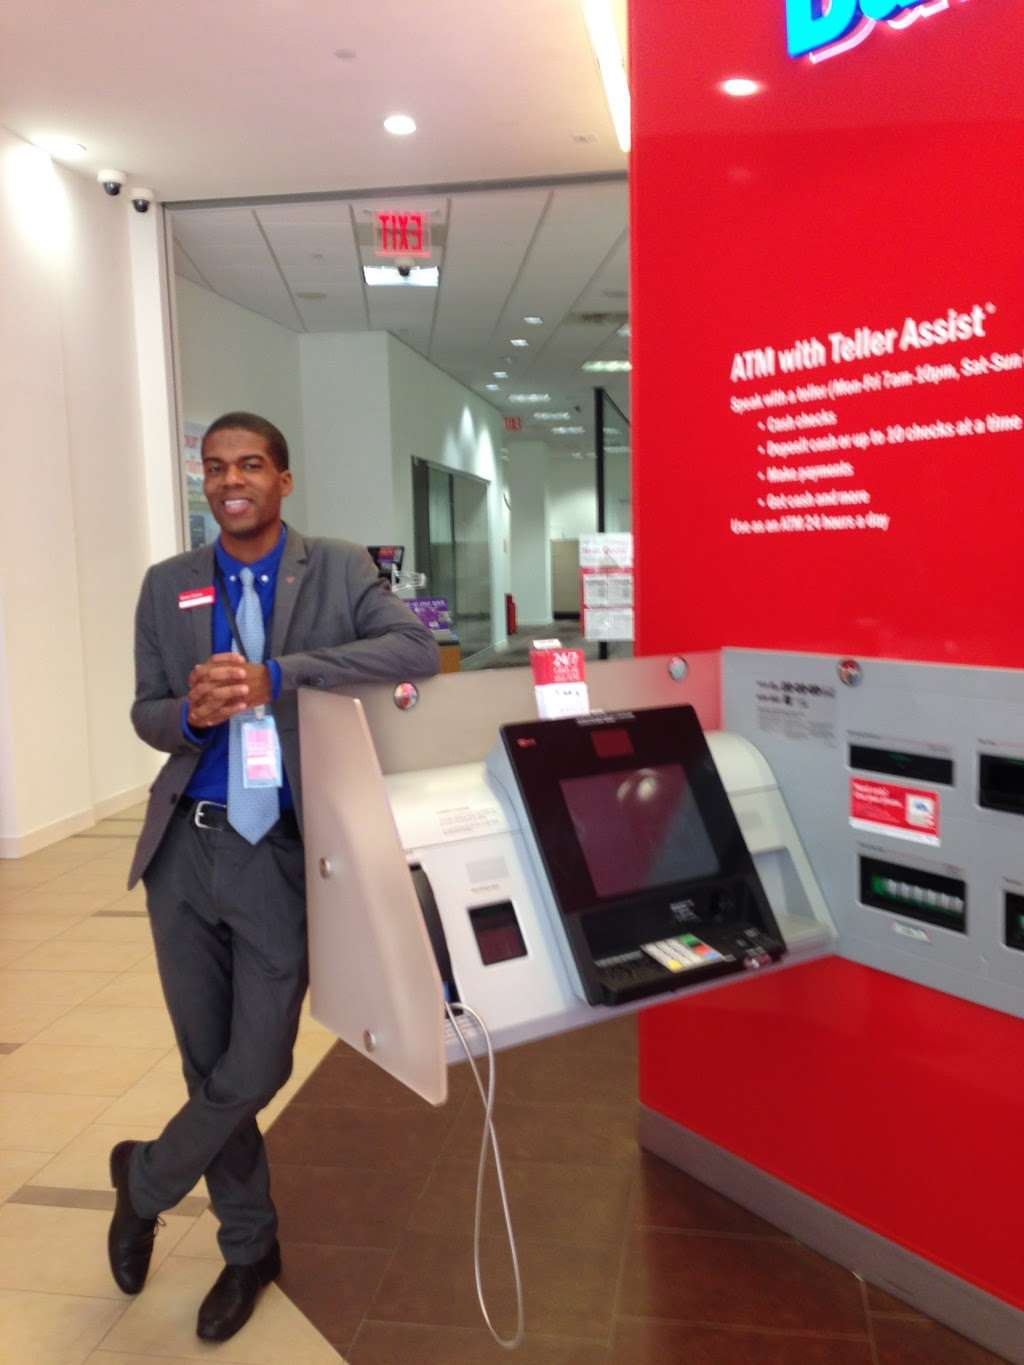 Bank of America Financial Center - bank  | Photo 5 of 5 | Address: 116 5th Ave, New York, NY 10011, USA | Phone: (212) 633-7505